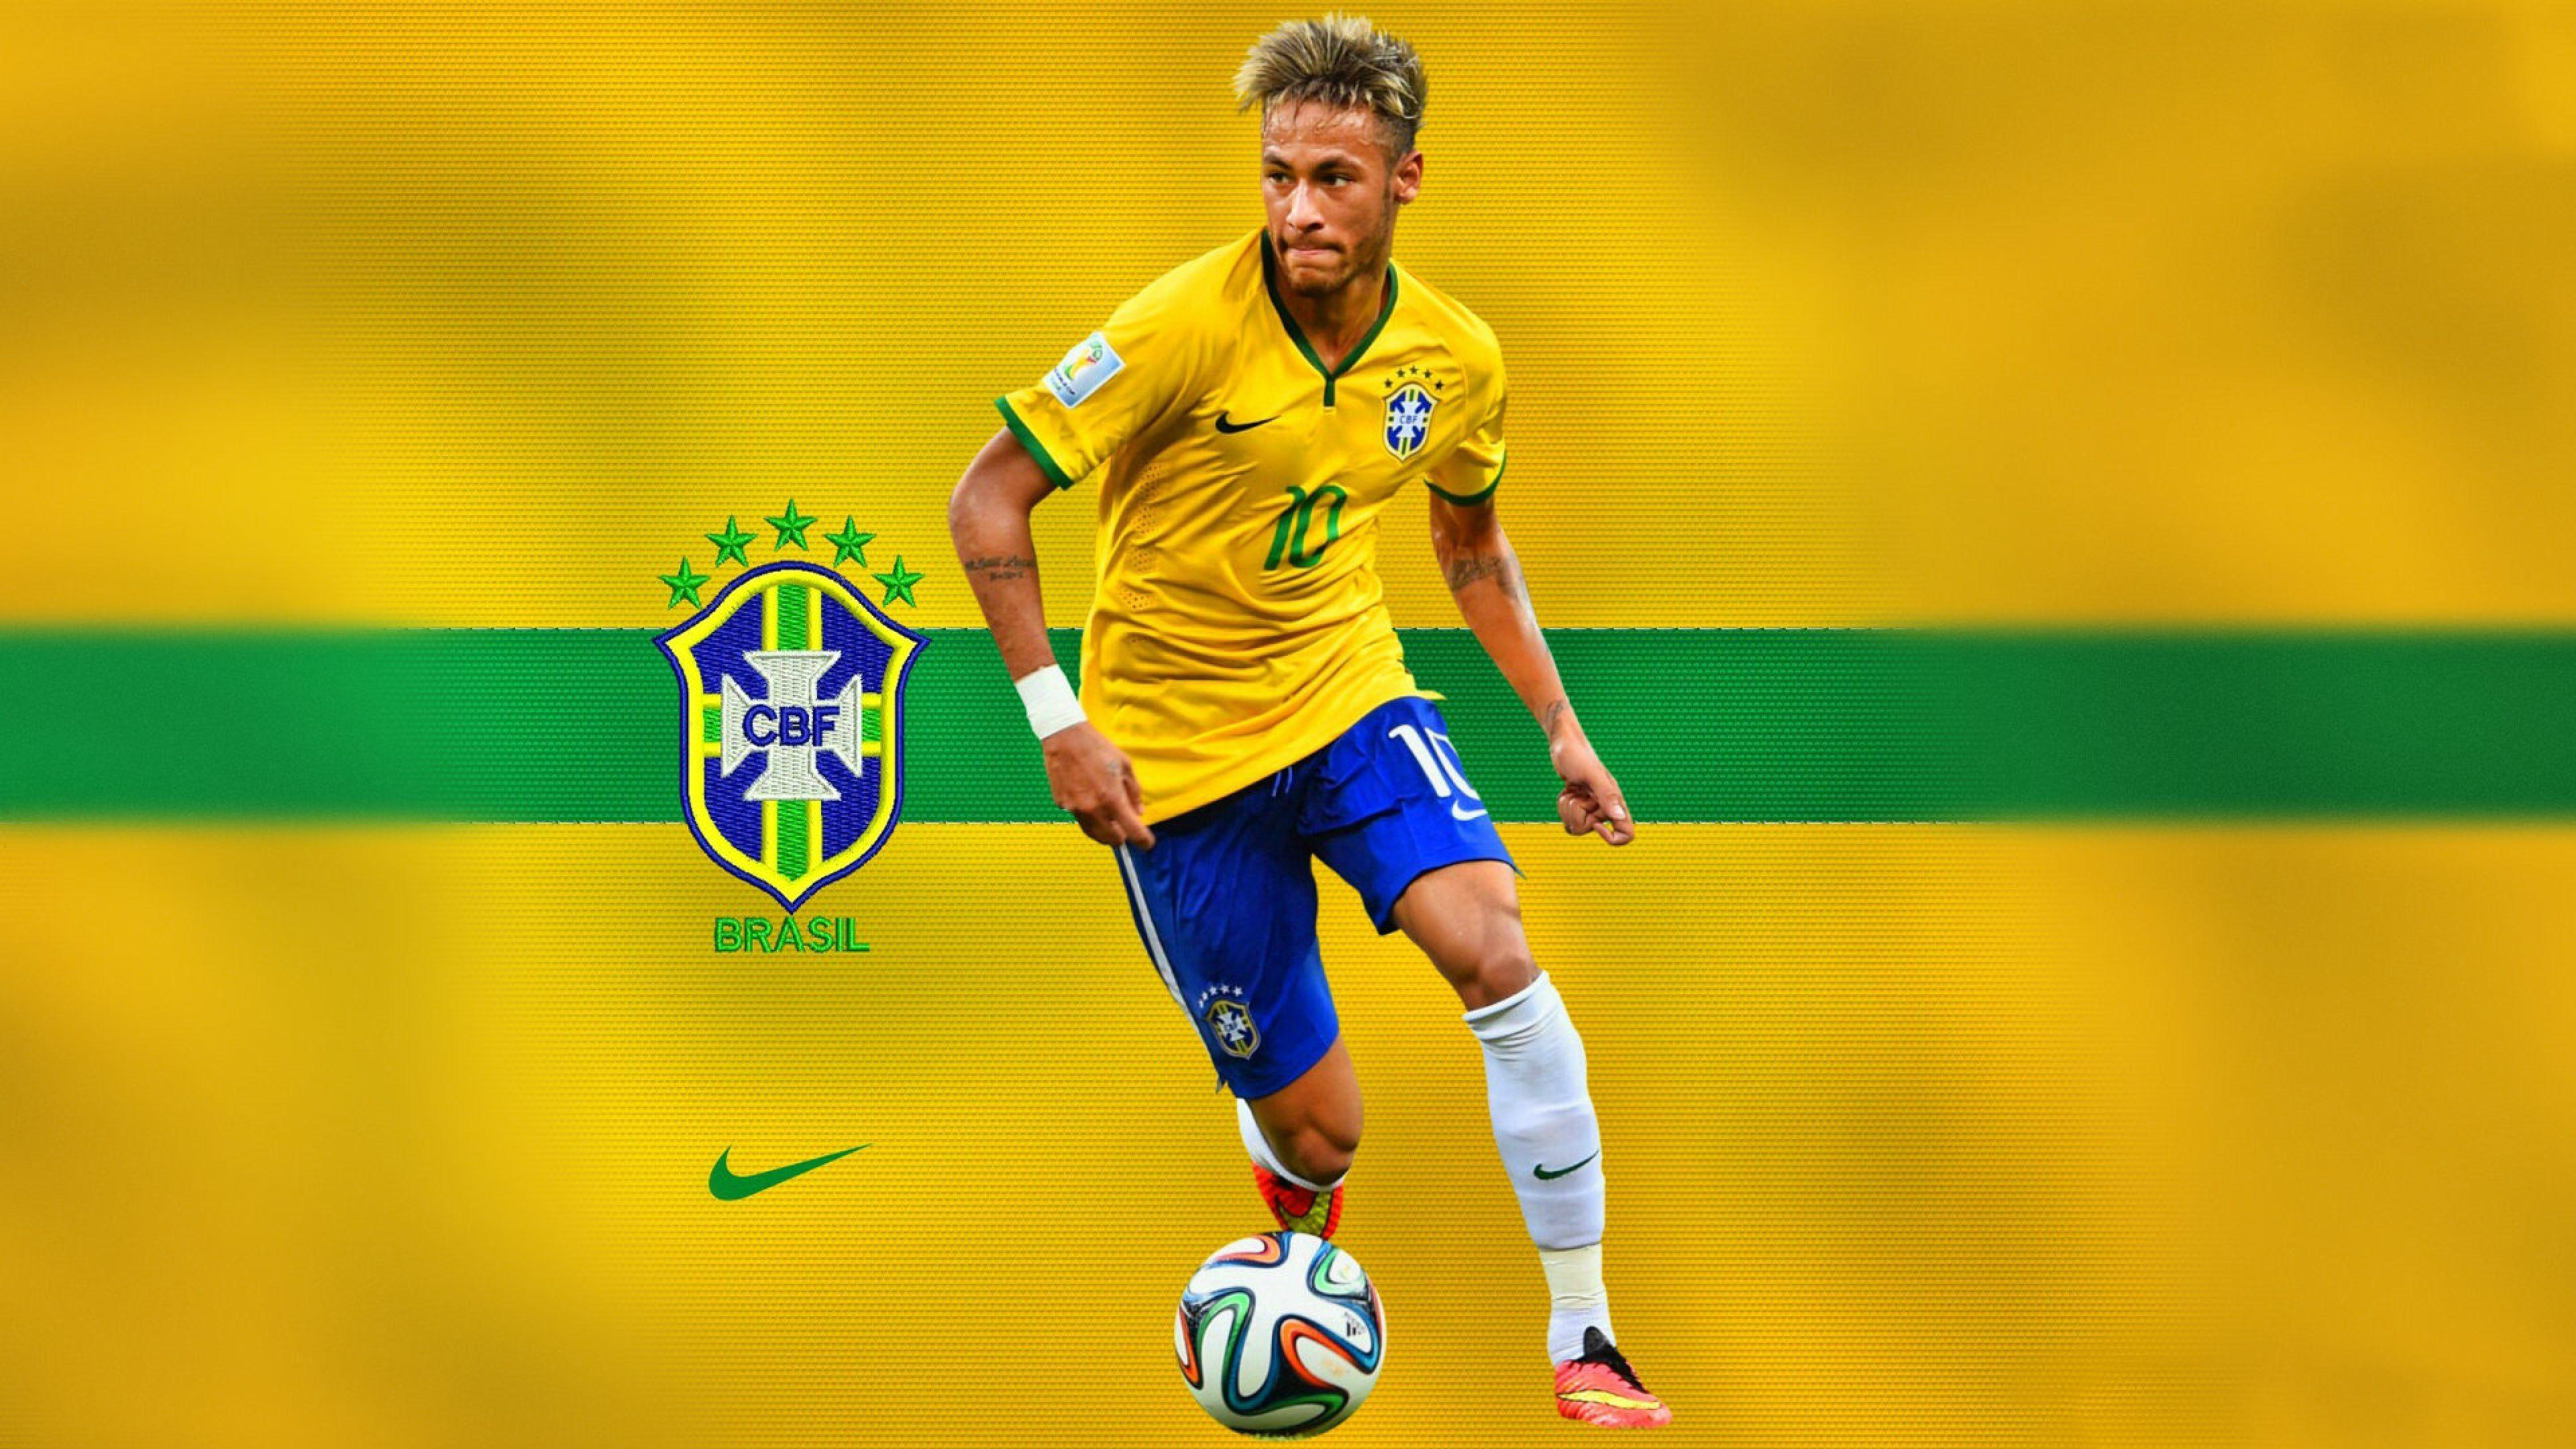 Yellow background images wallpaper cave - Neymar Jr Wallpapers 2017 Hd Wallpaper Cave